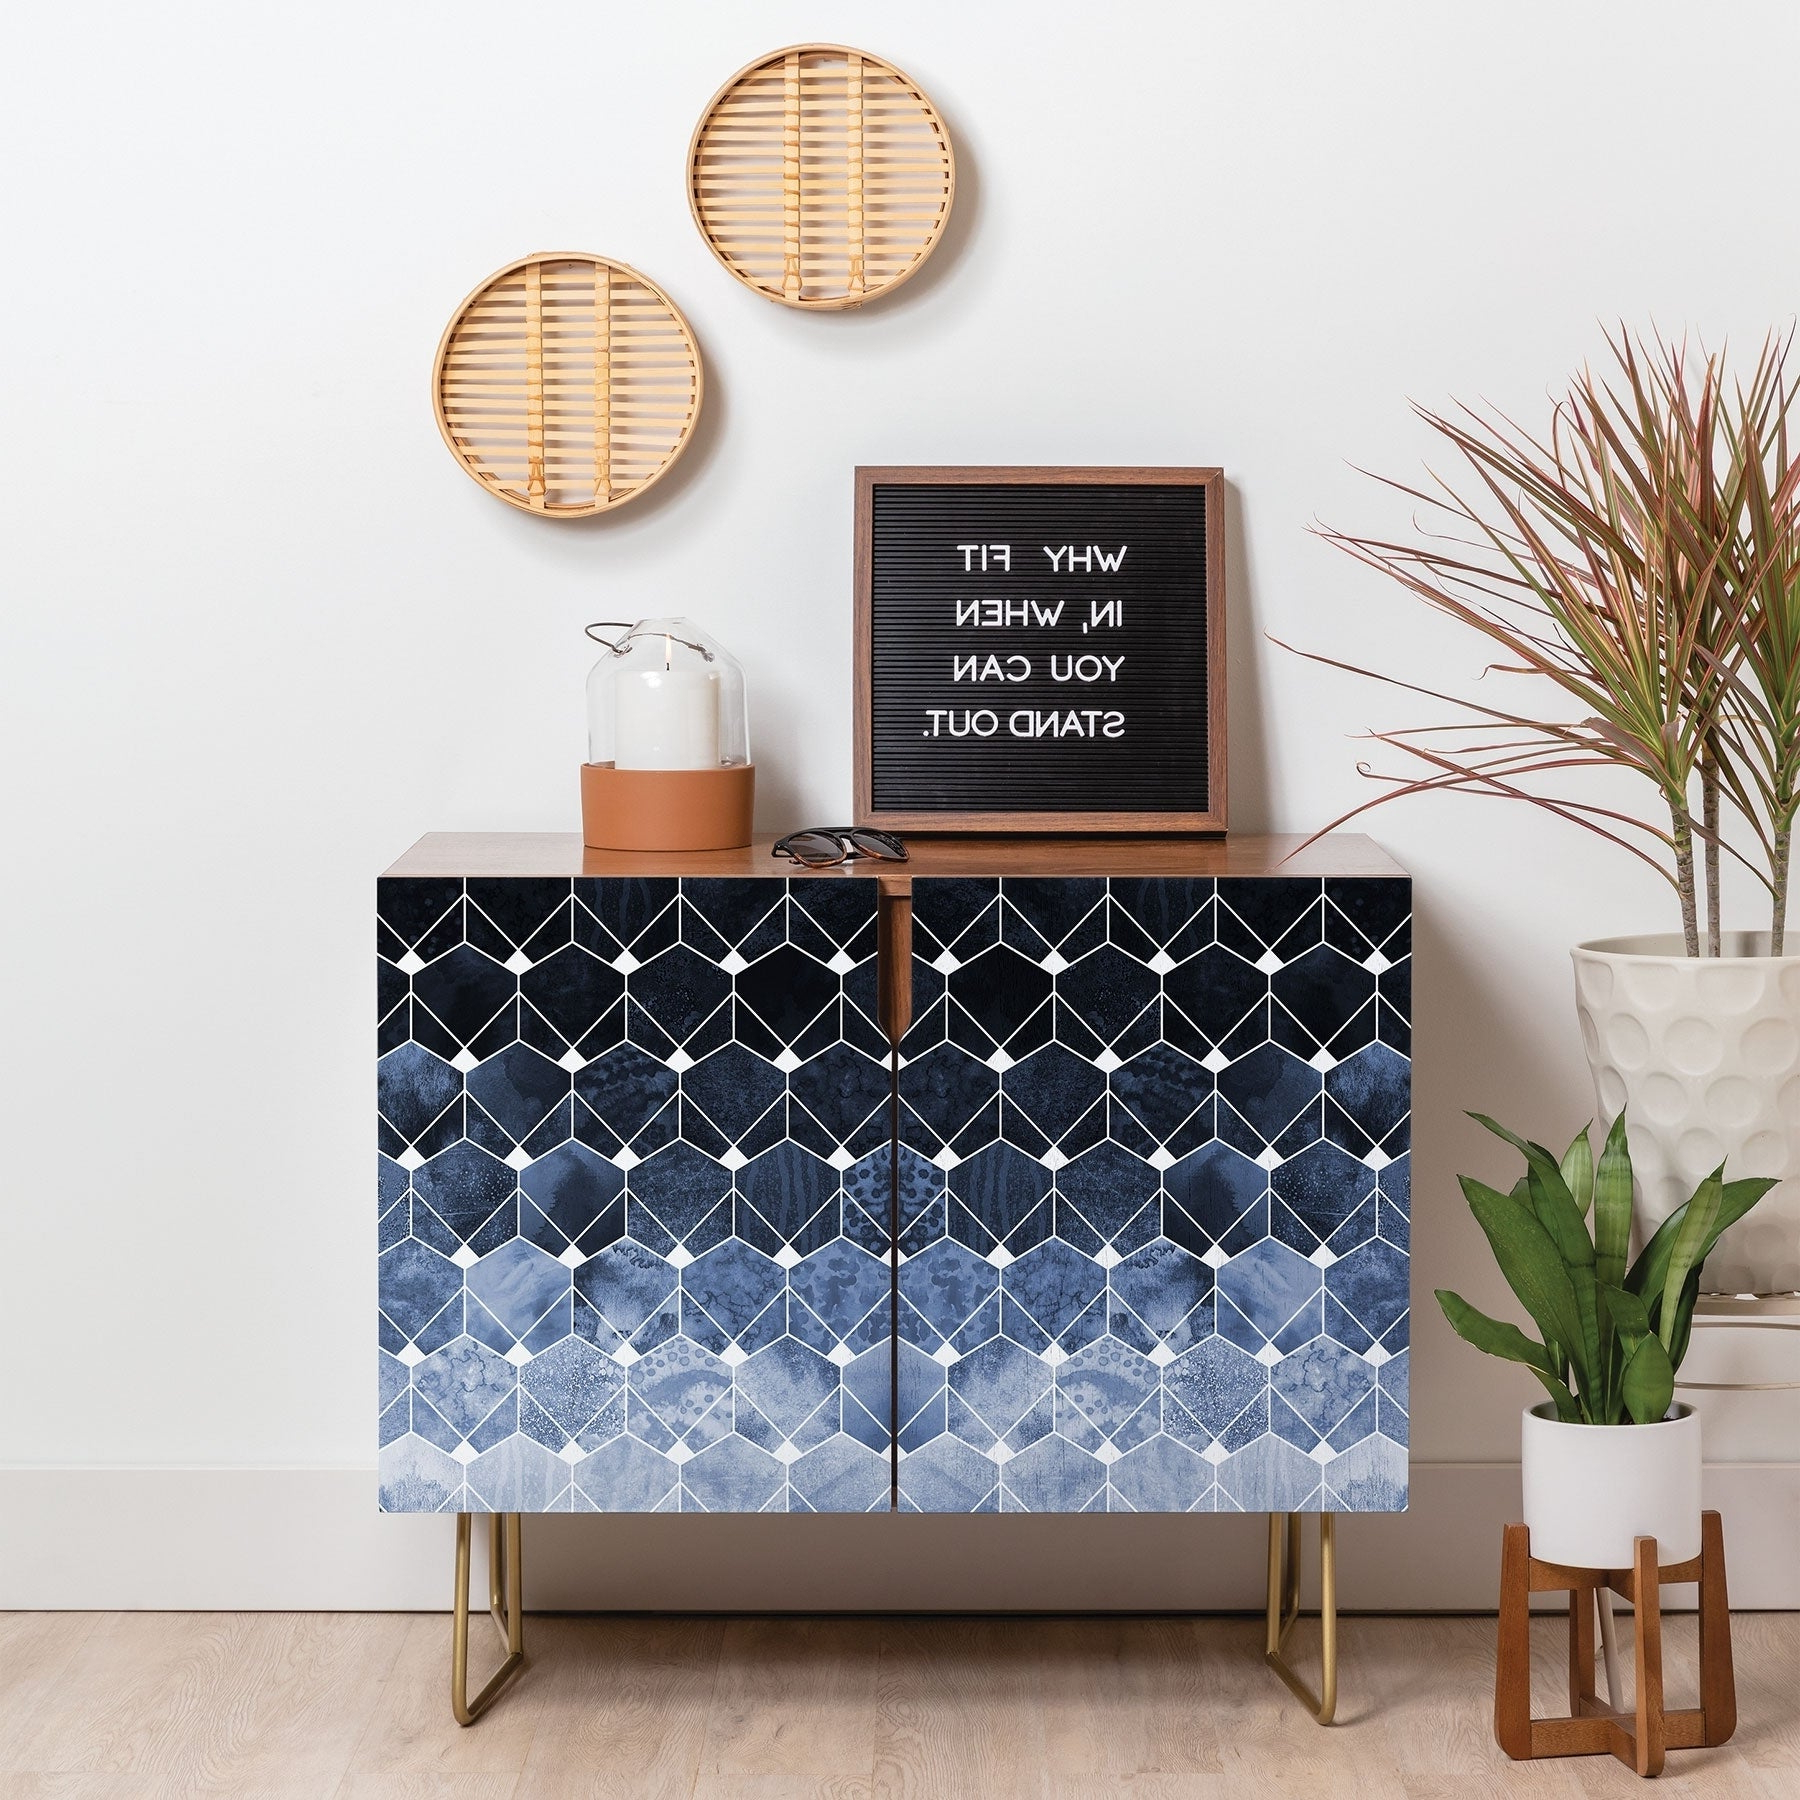 Deny Designs Blue Hexagons And Diamonds Credenza (Birch Or Walnut, 2 Leg Options) With Exagonal Geometry Credenzas (View 12 of 20)